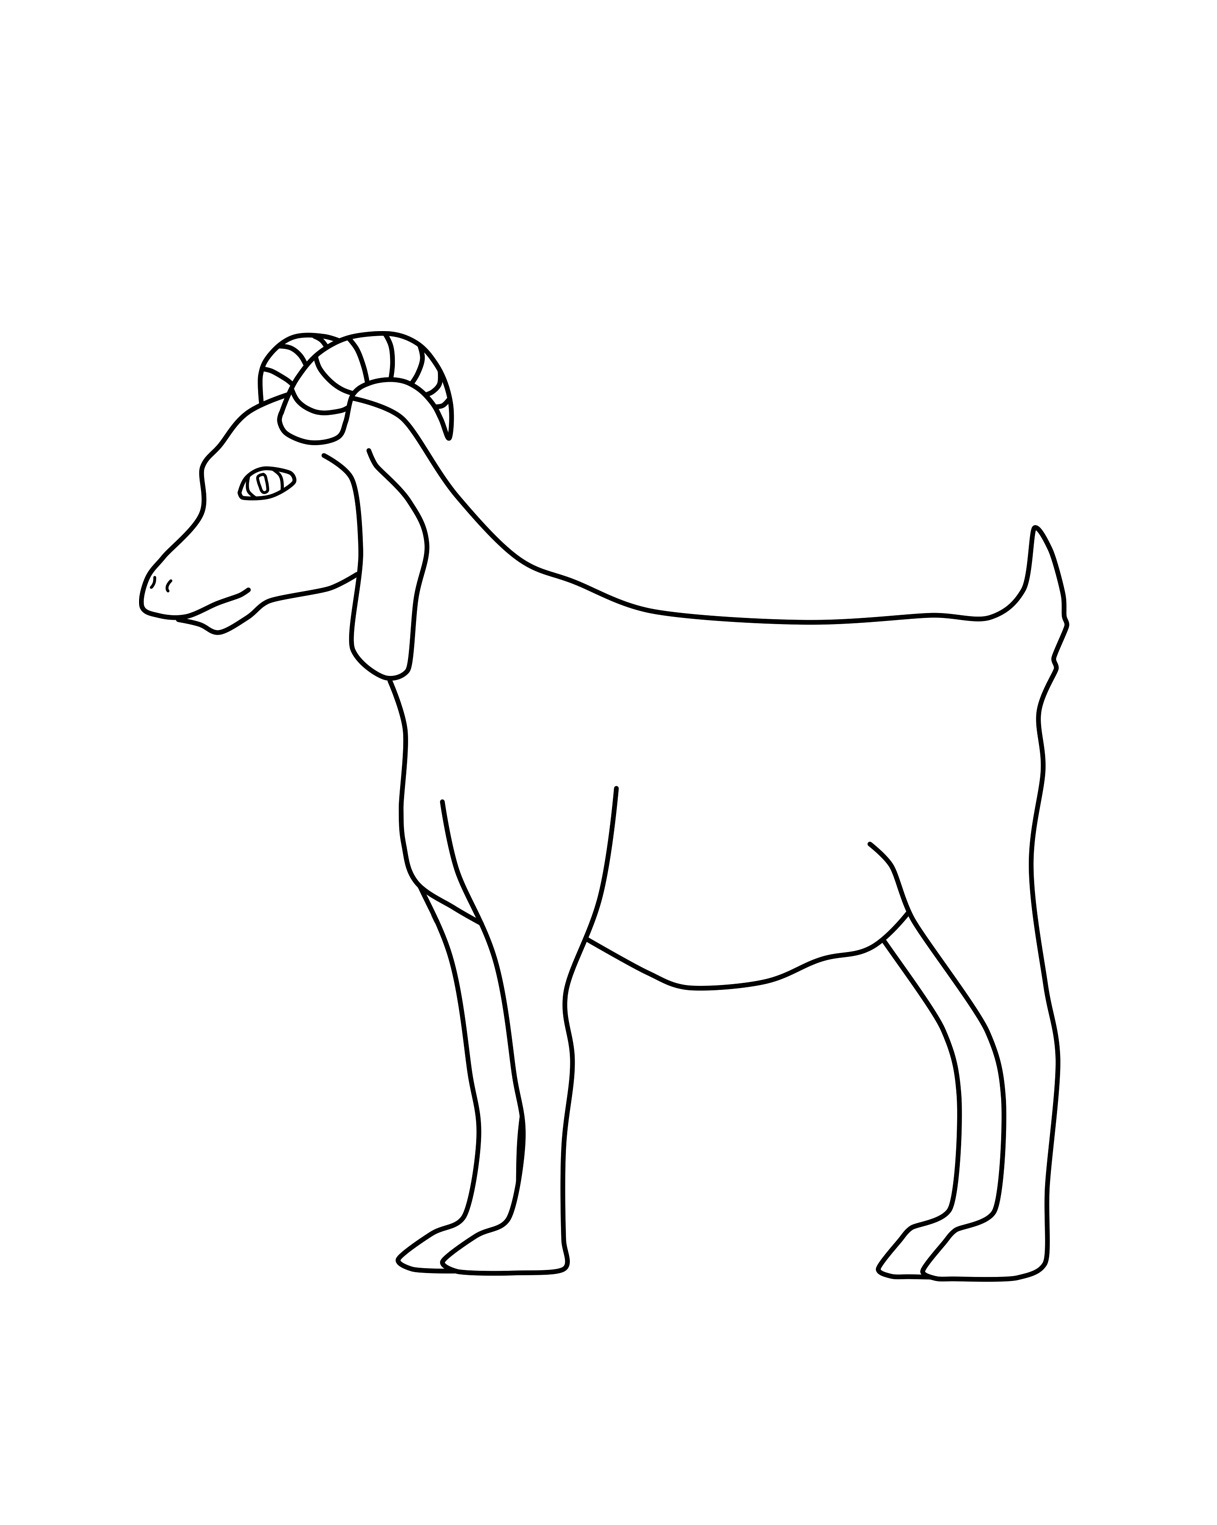 picture of a goat to color bleating goats 18 goat coloring pages and pictures print picture of goat a to color